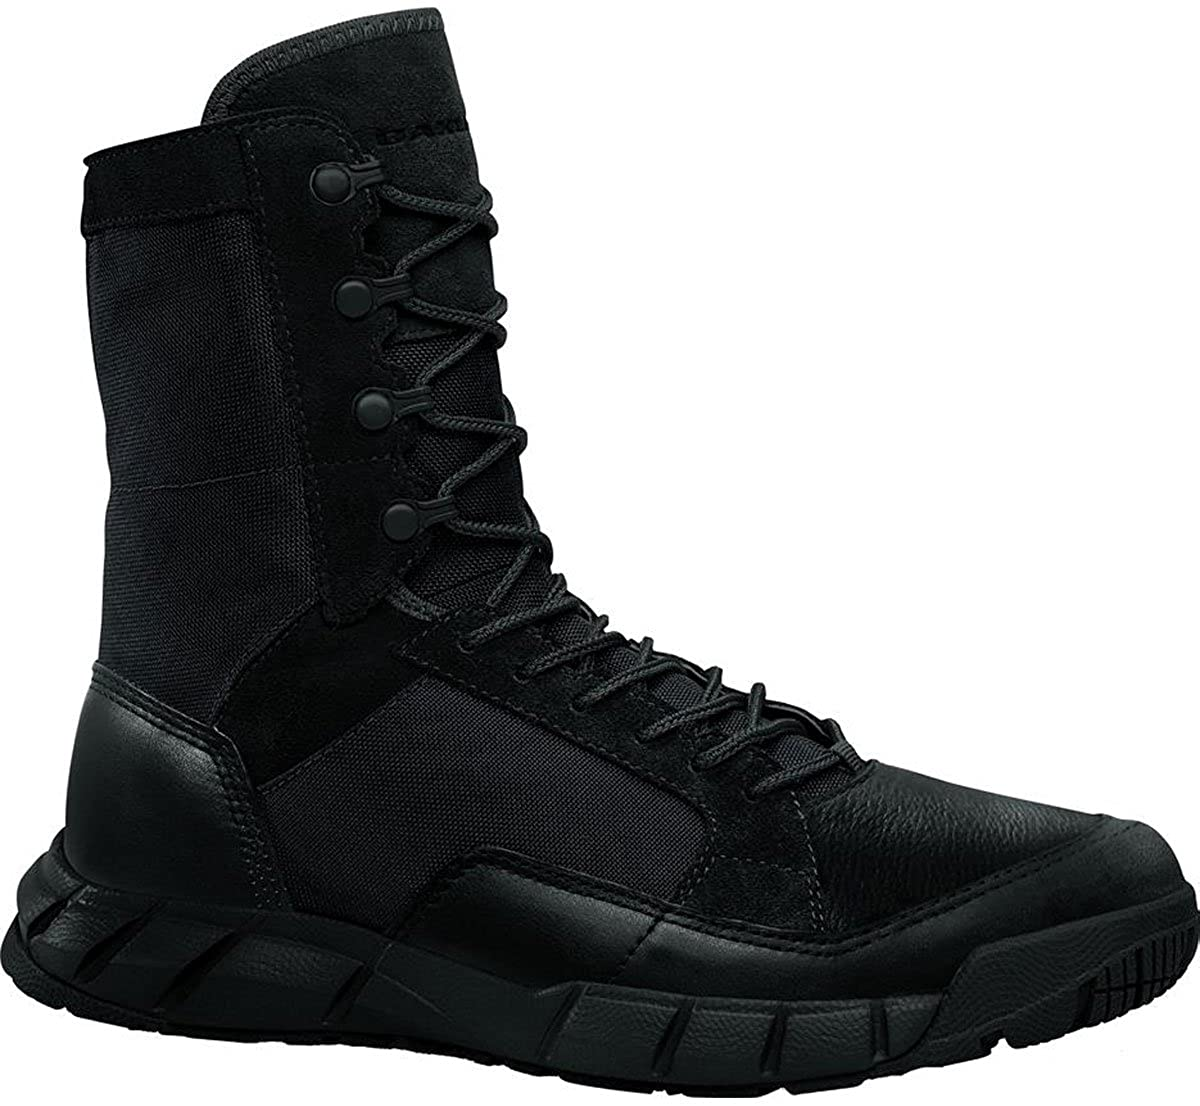 Oakley Men's SI Cheap super special price Boots Free Shipping New Light Patrol